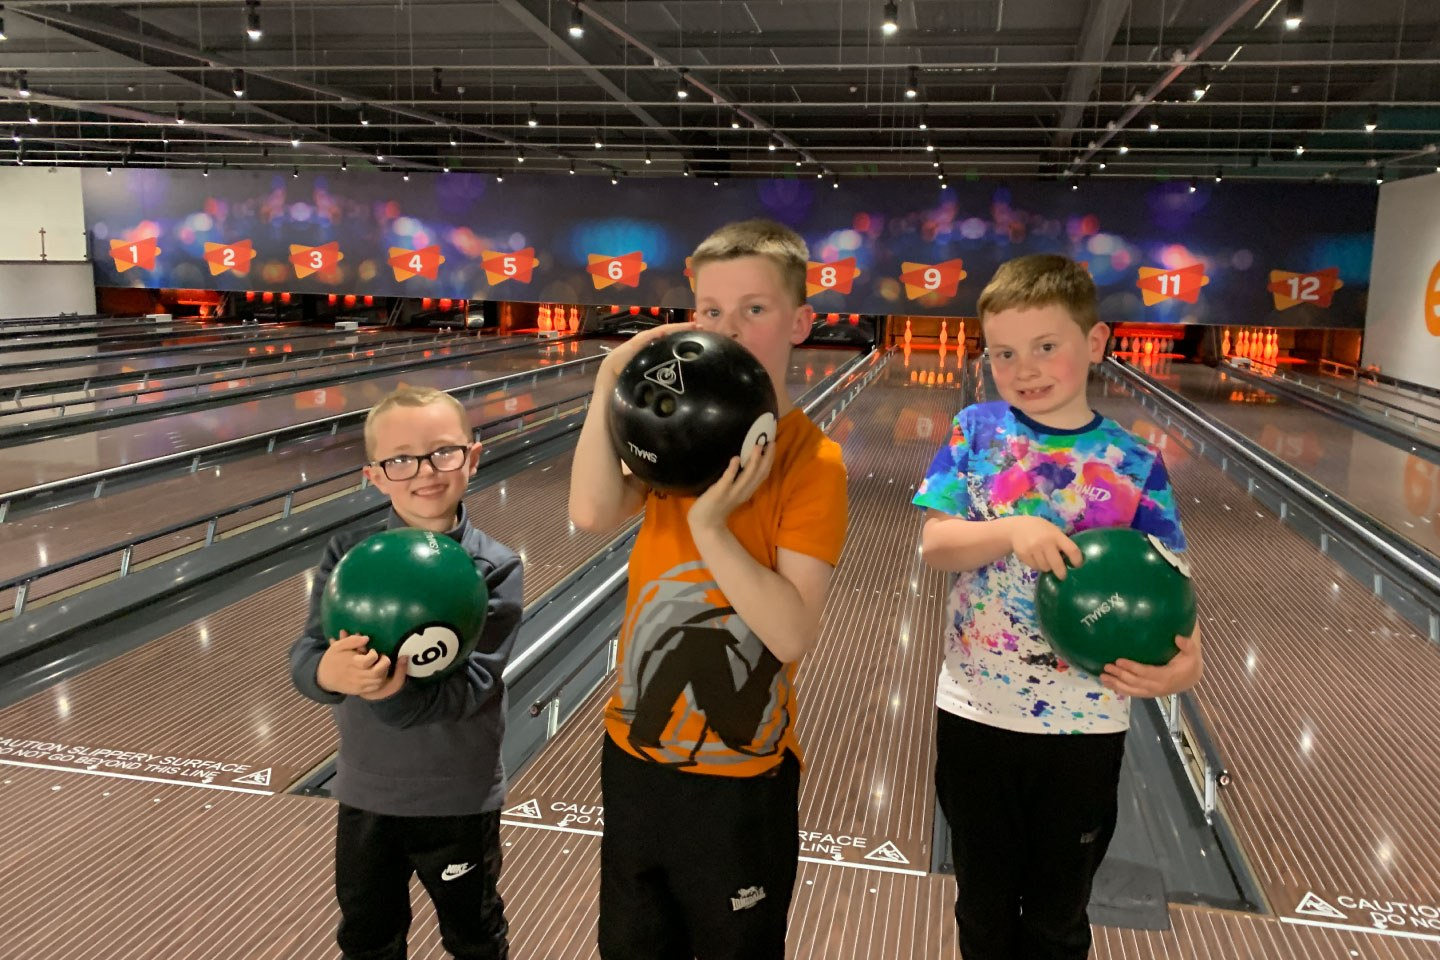 3 Boys Holding Bowling Balls at Airtastic Bowling Alley in Craigavon